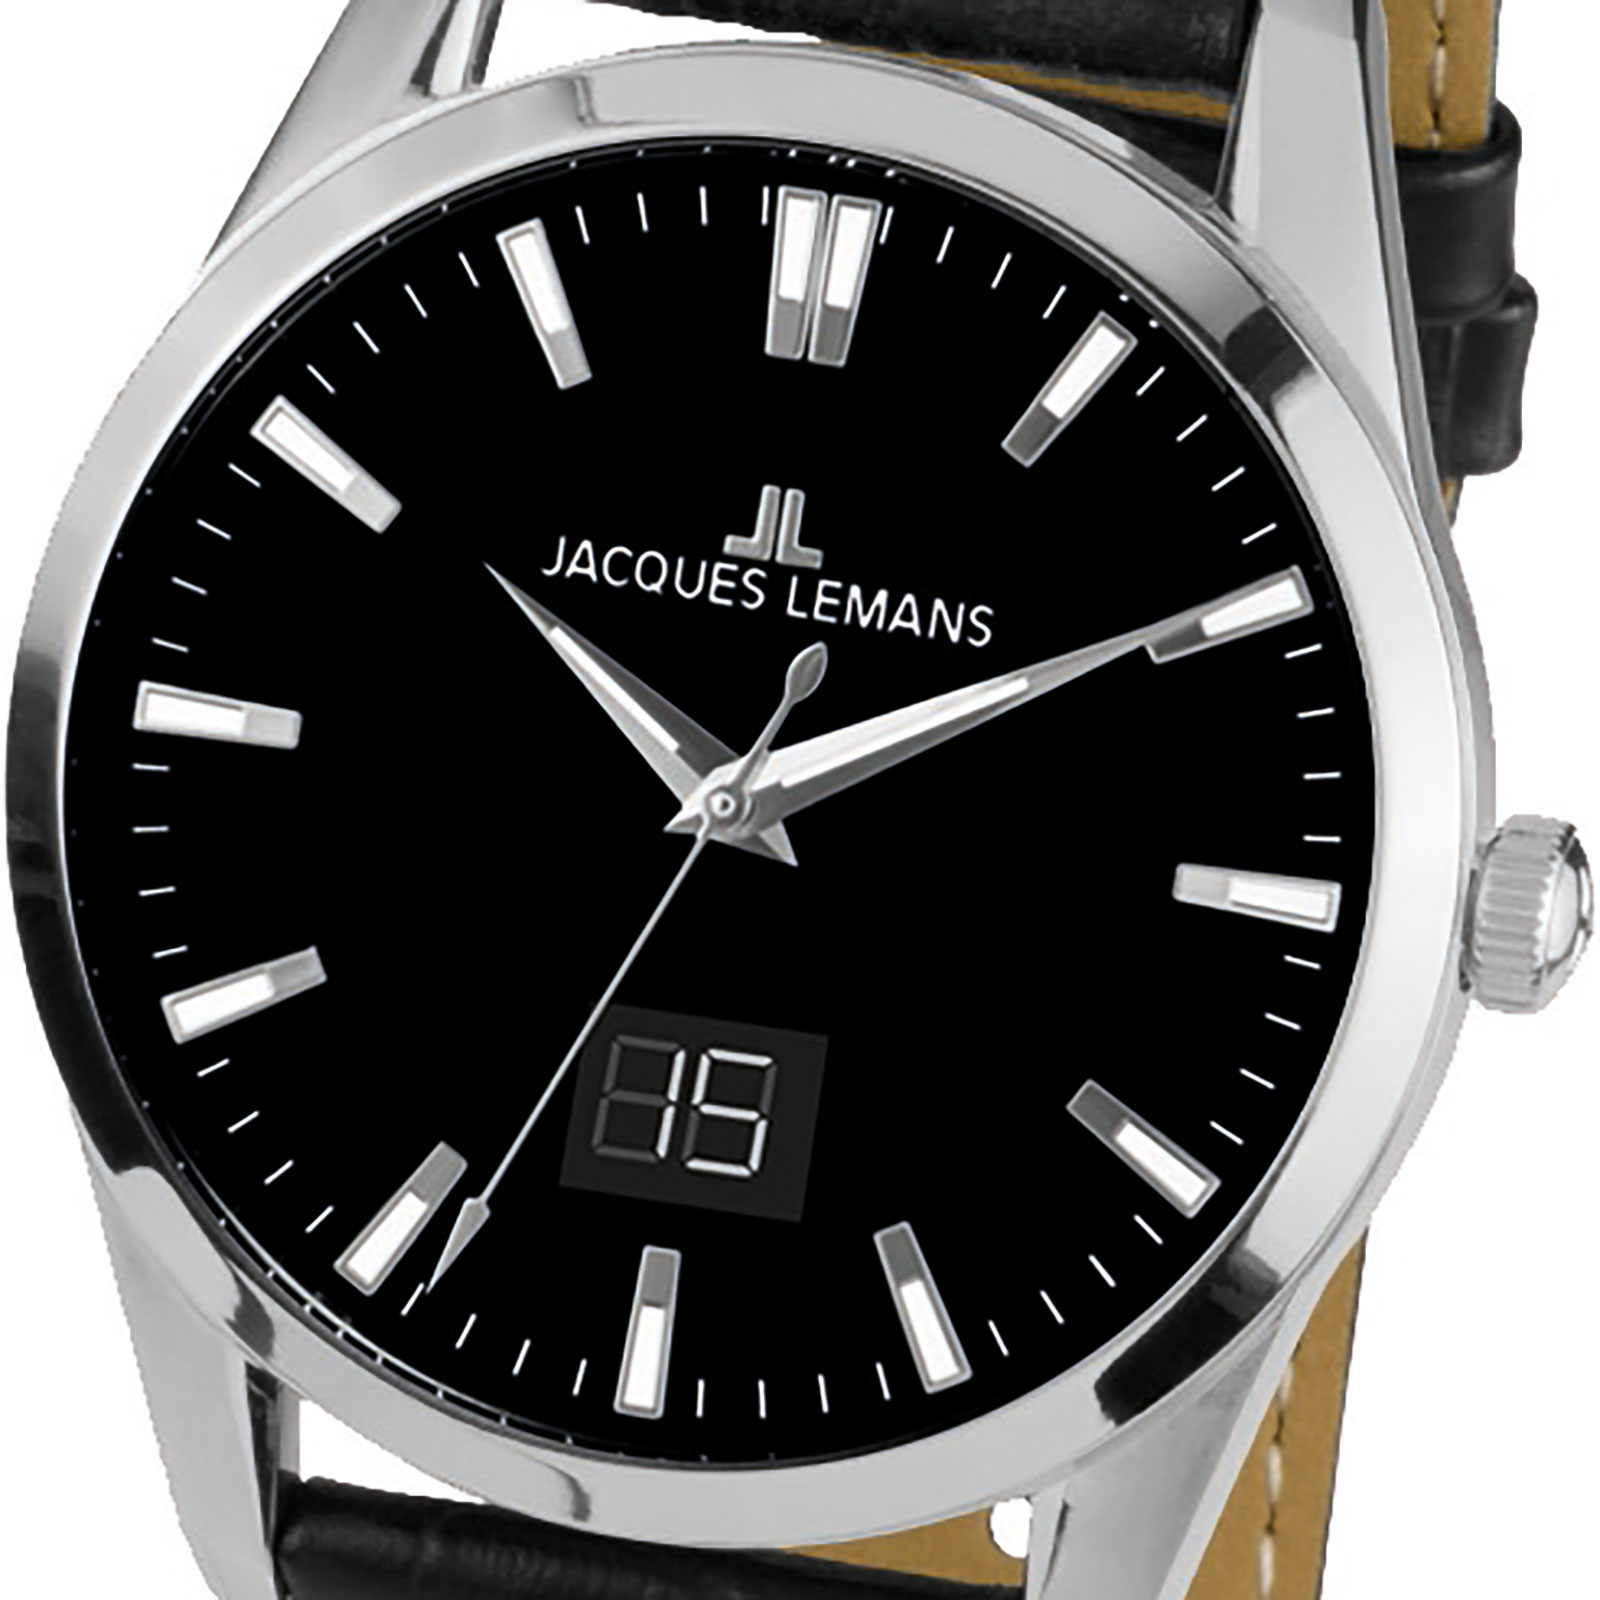 Jacques Lemans Liverpool 1-1828A